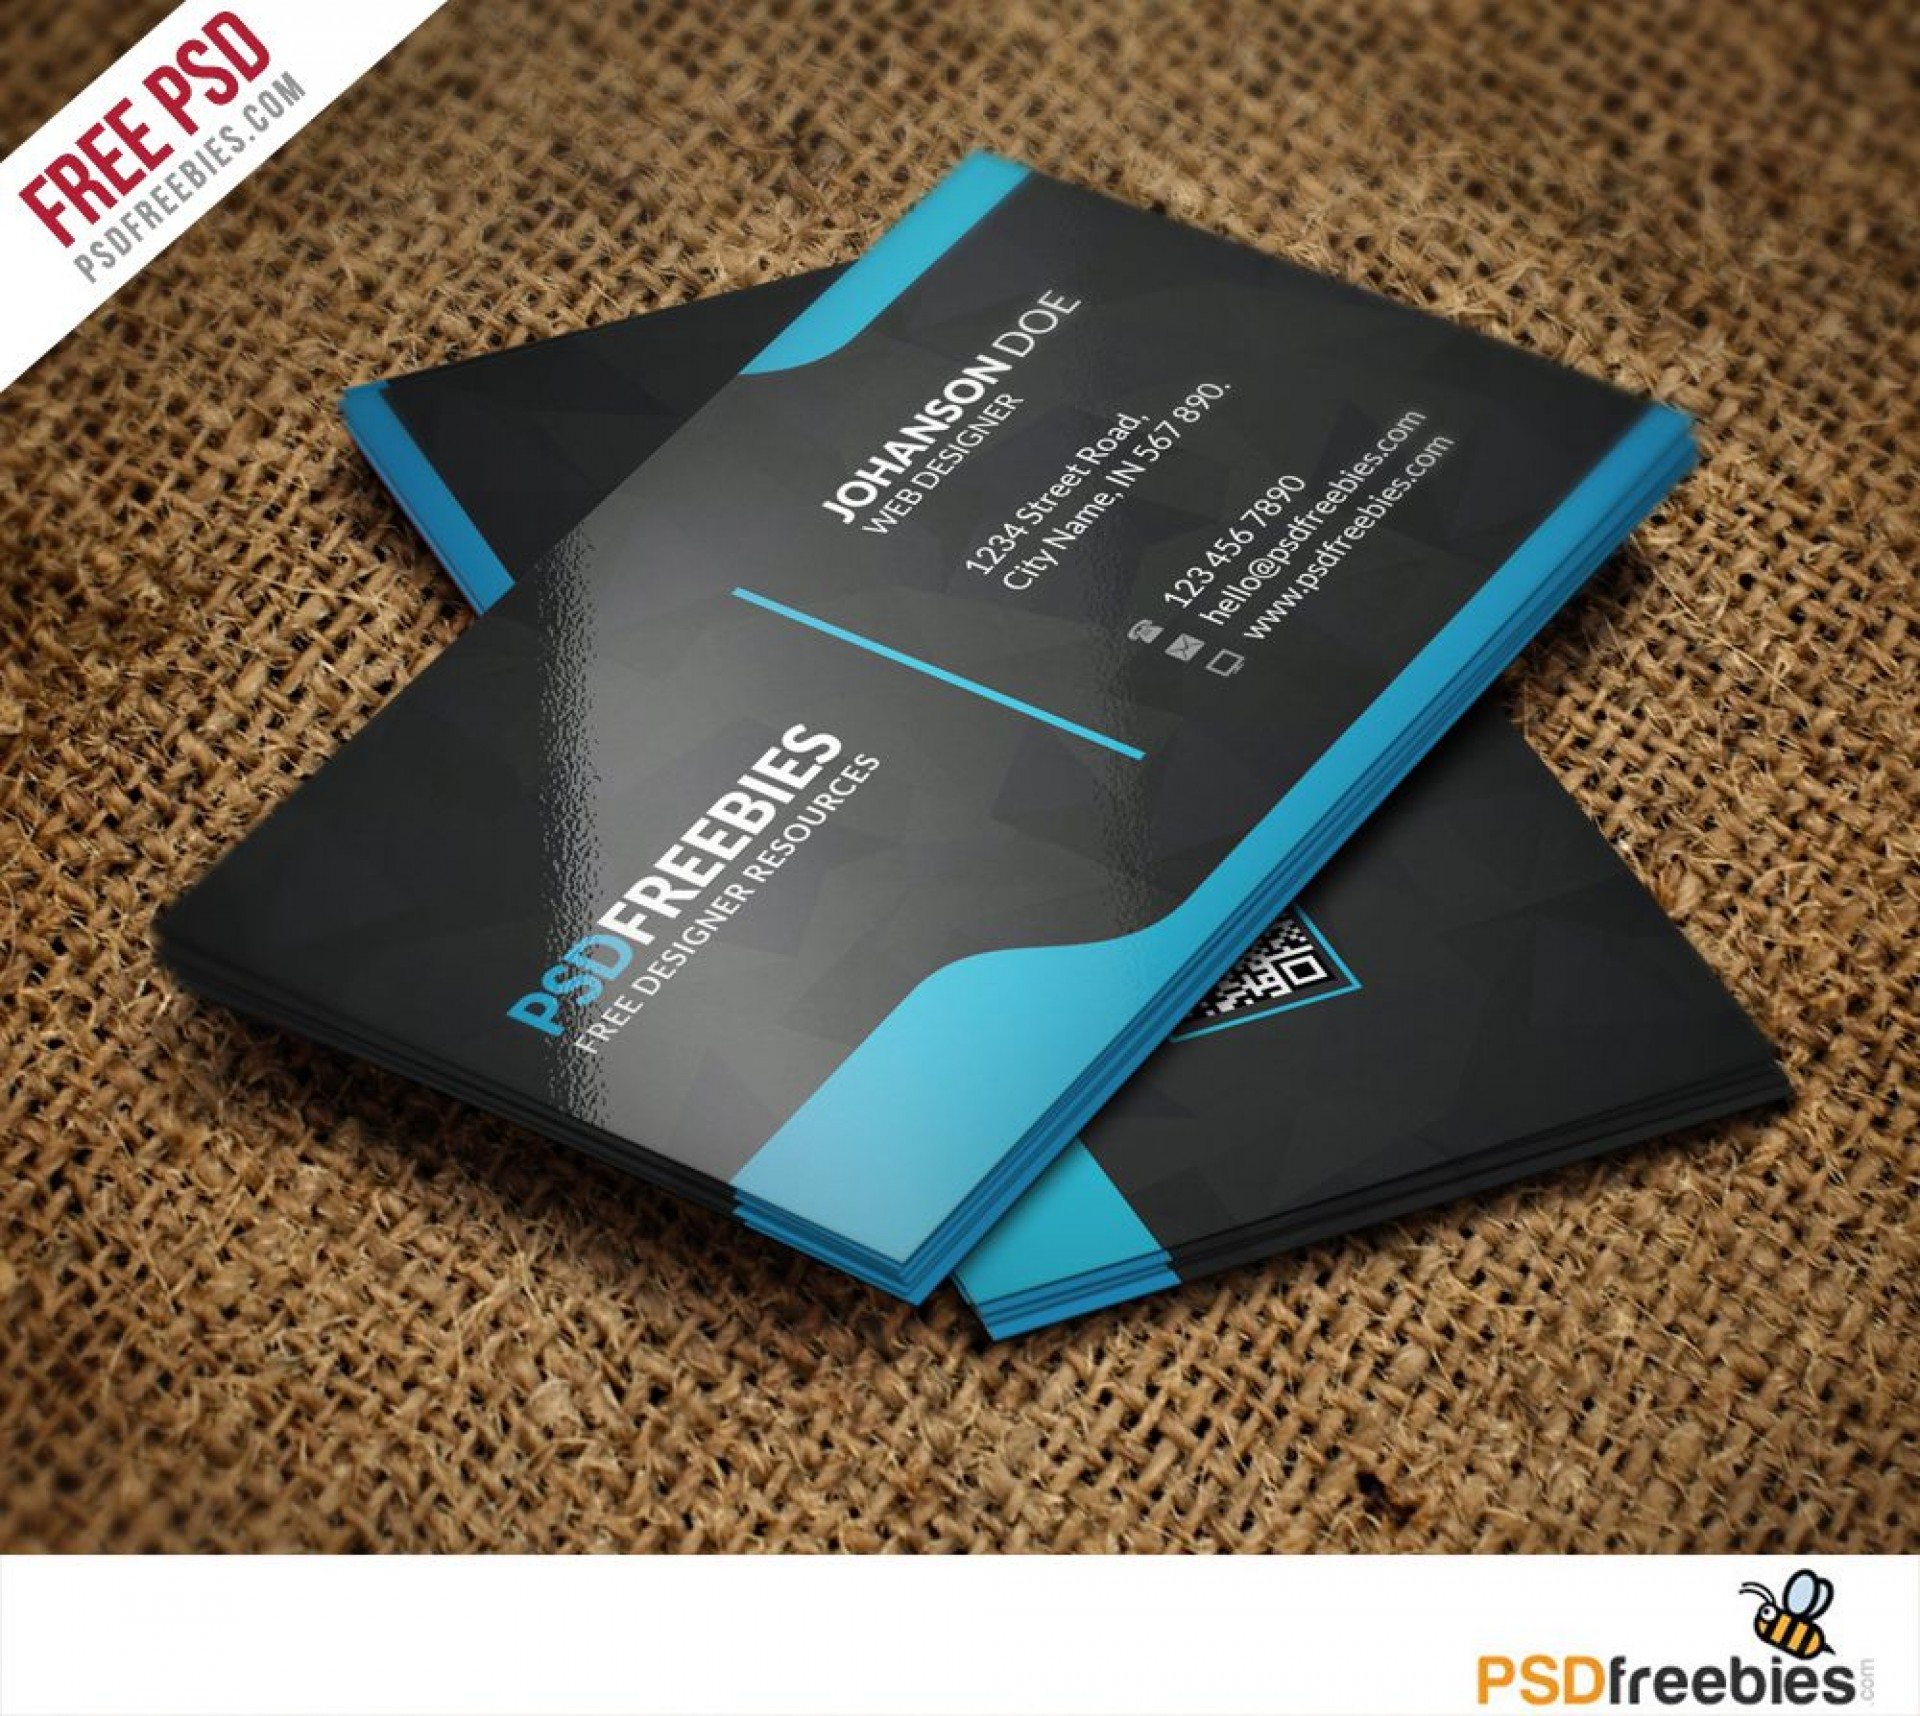 006 Incredible Download Busines Card Template Picture  For Microsoft Publisher Adobe Illustrator Visiting Psd1920